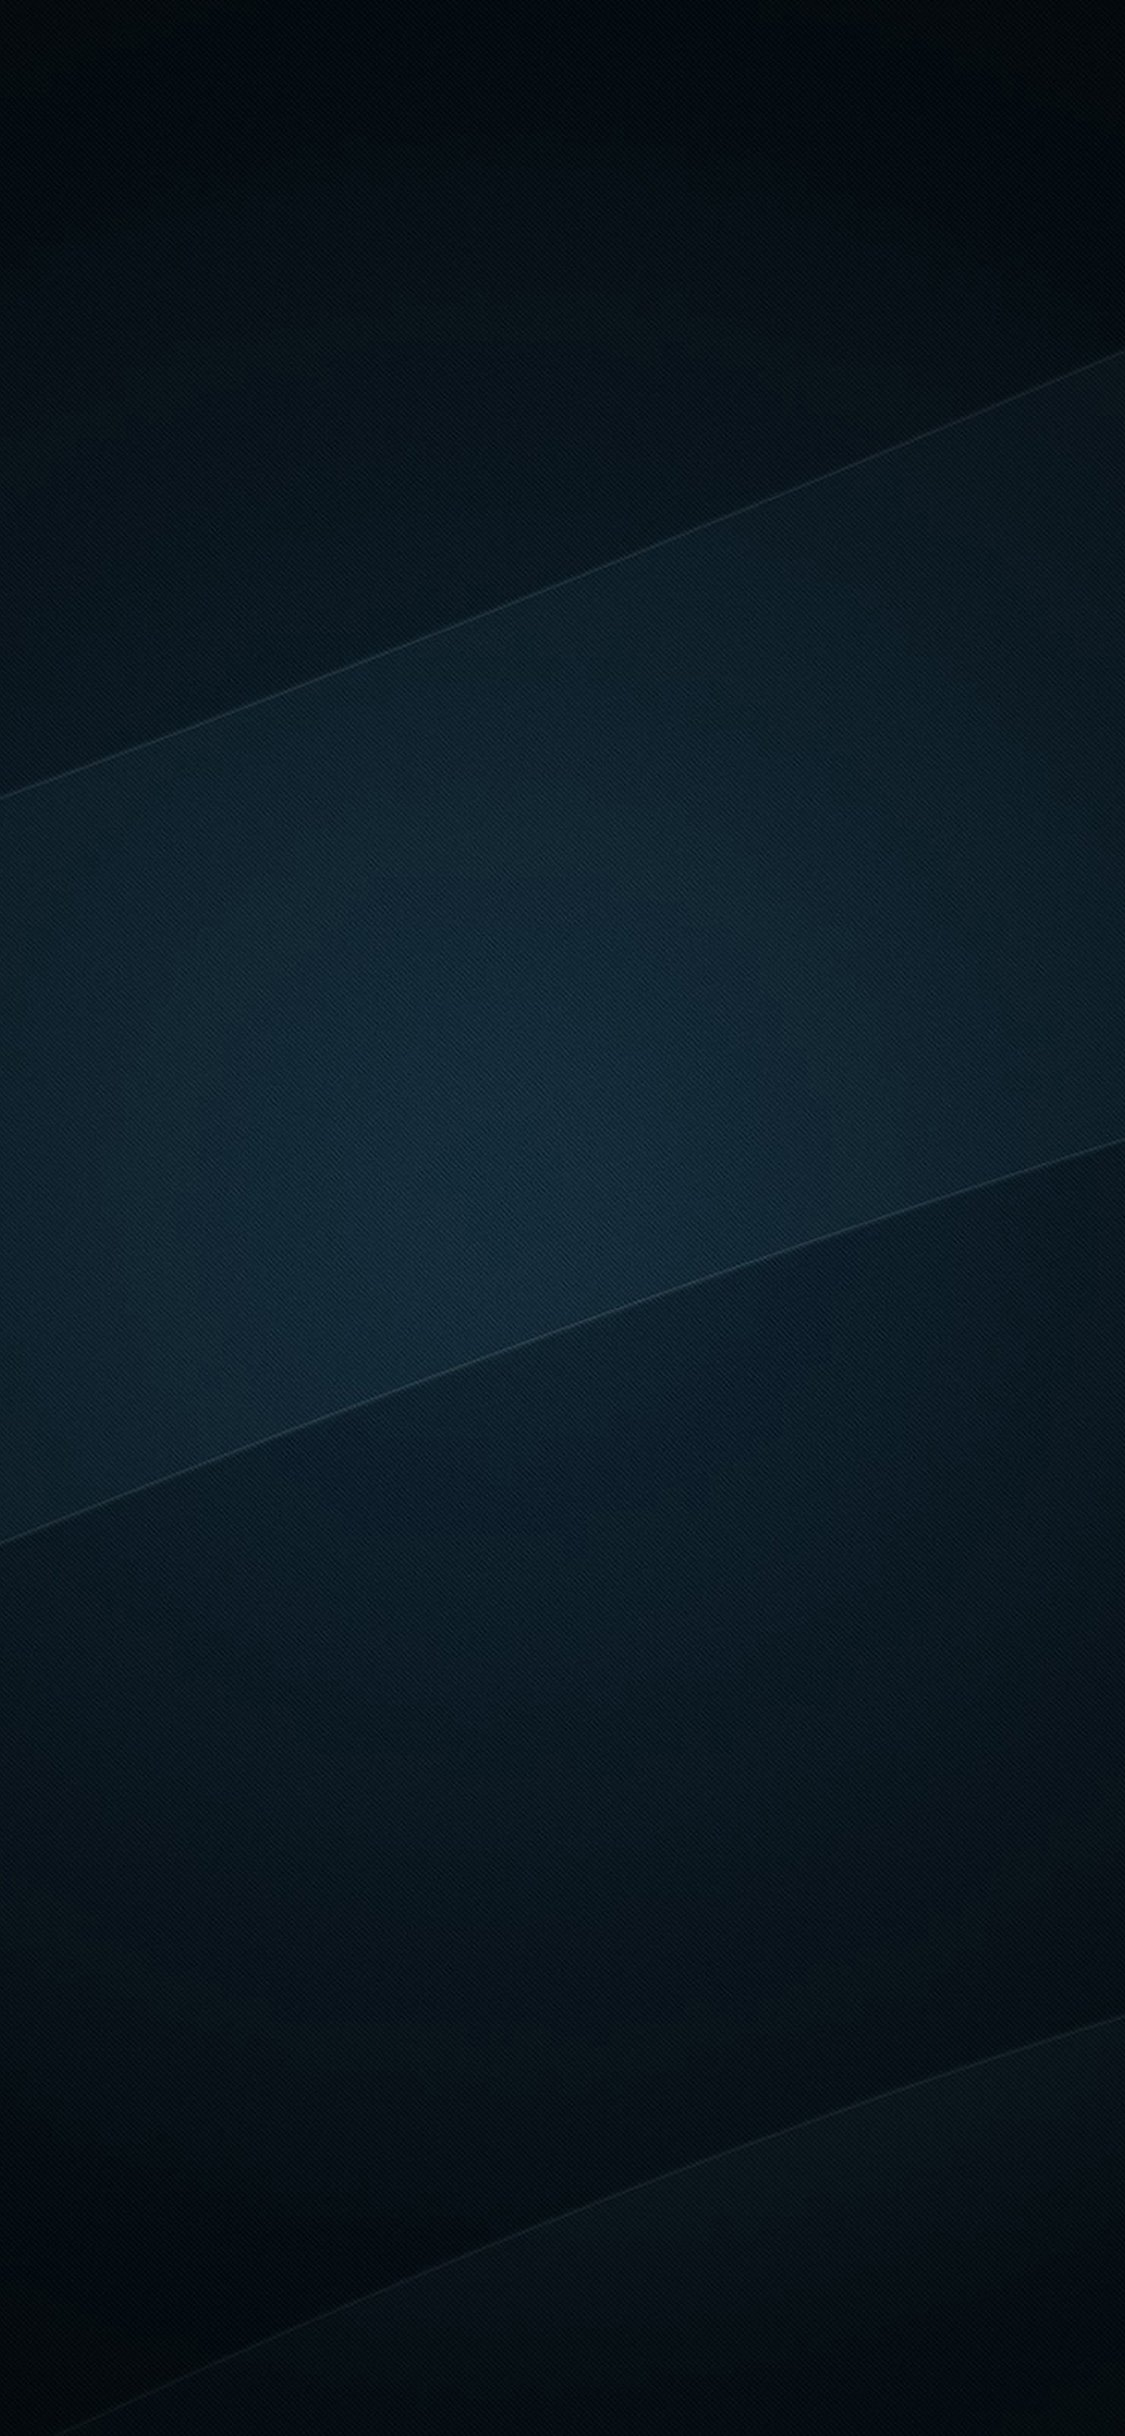 Dark Line Abstract Iphone X Wallpapers Free Download